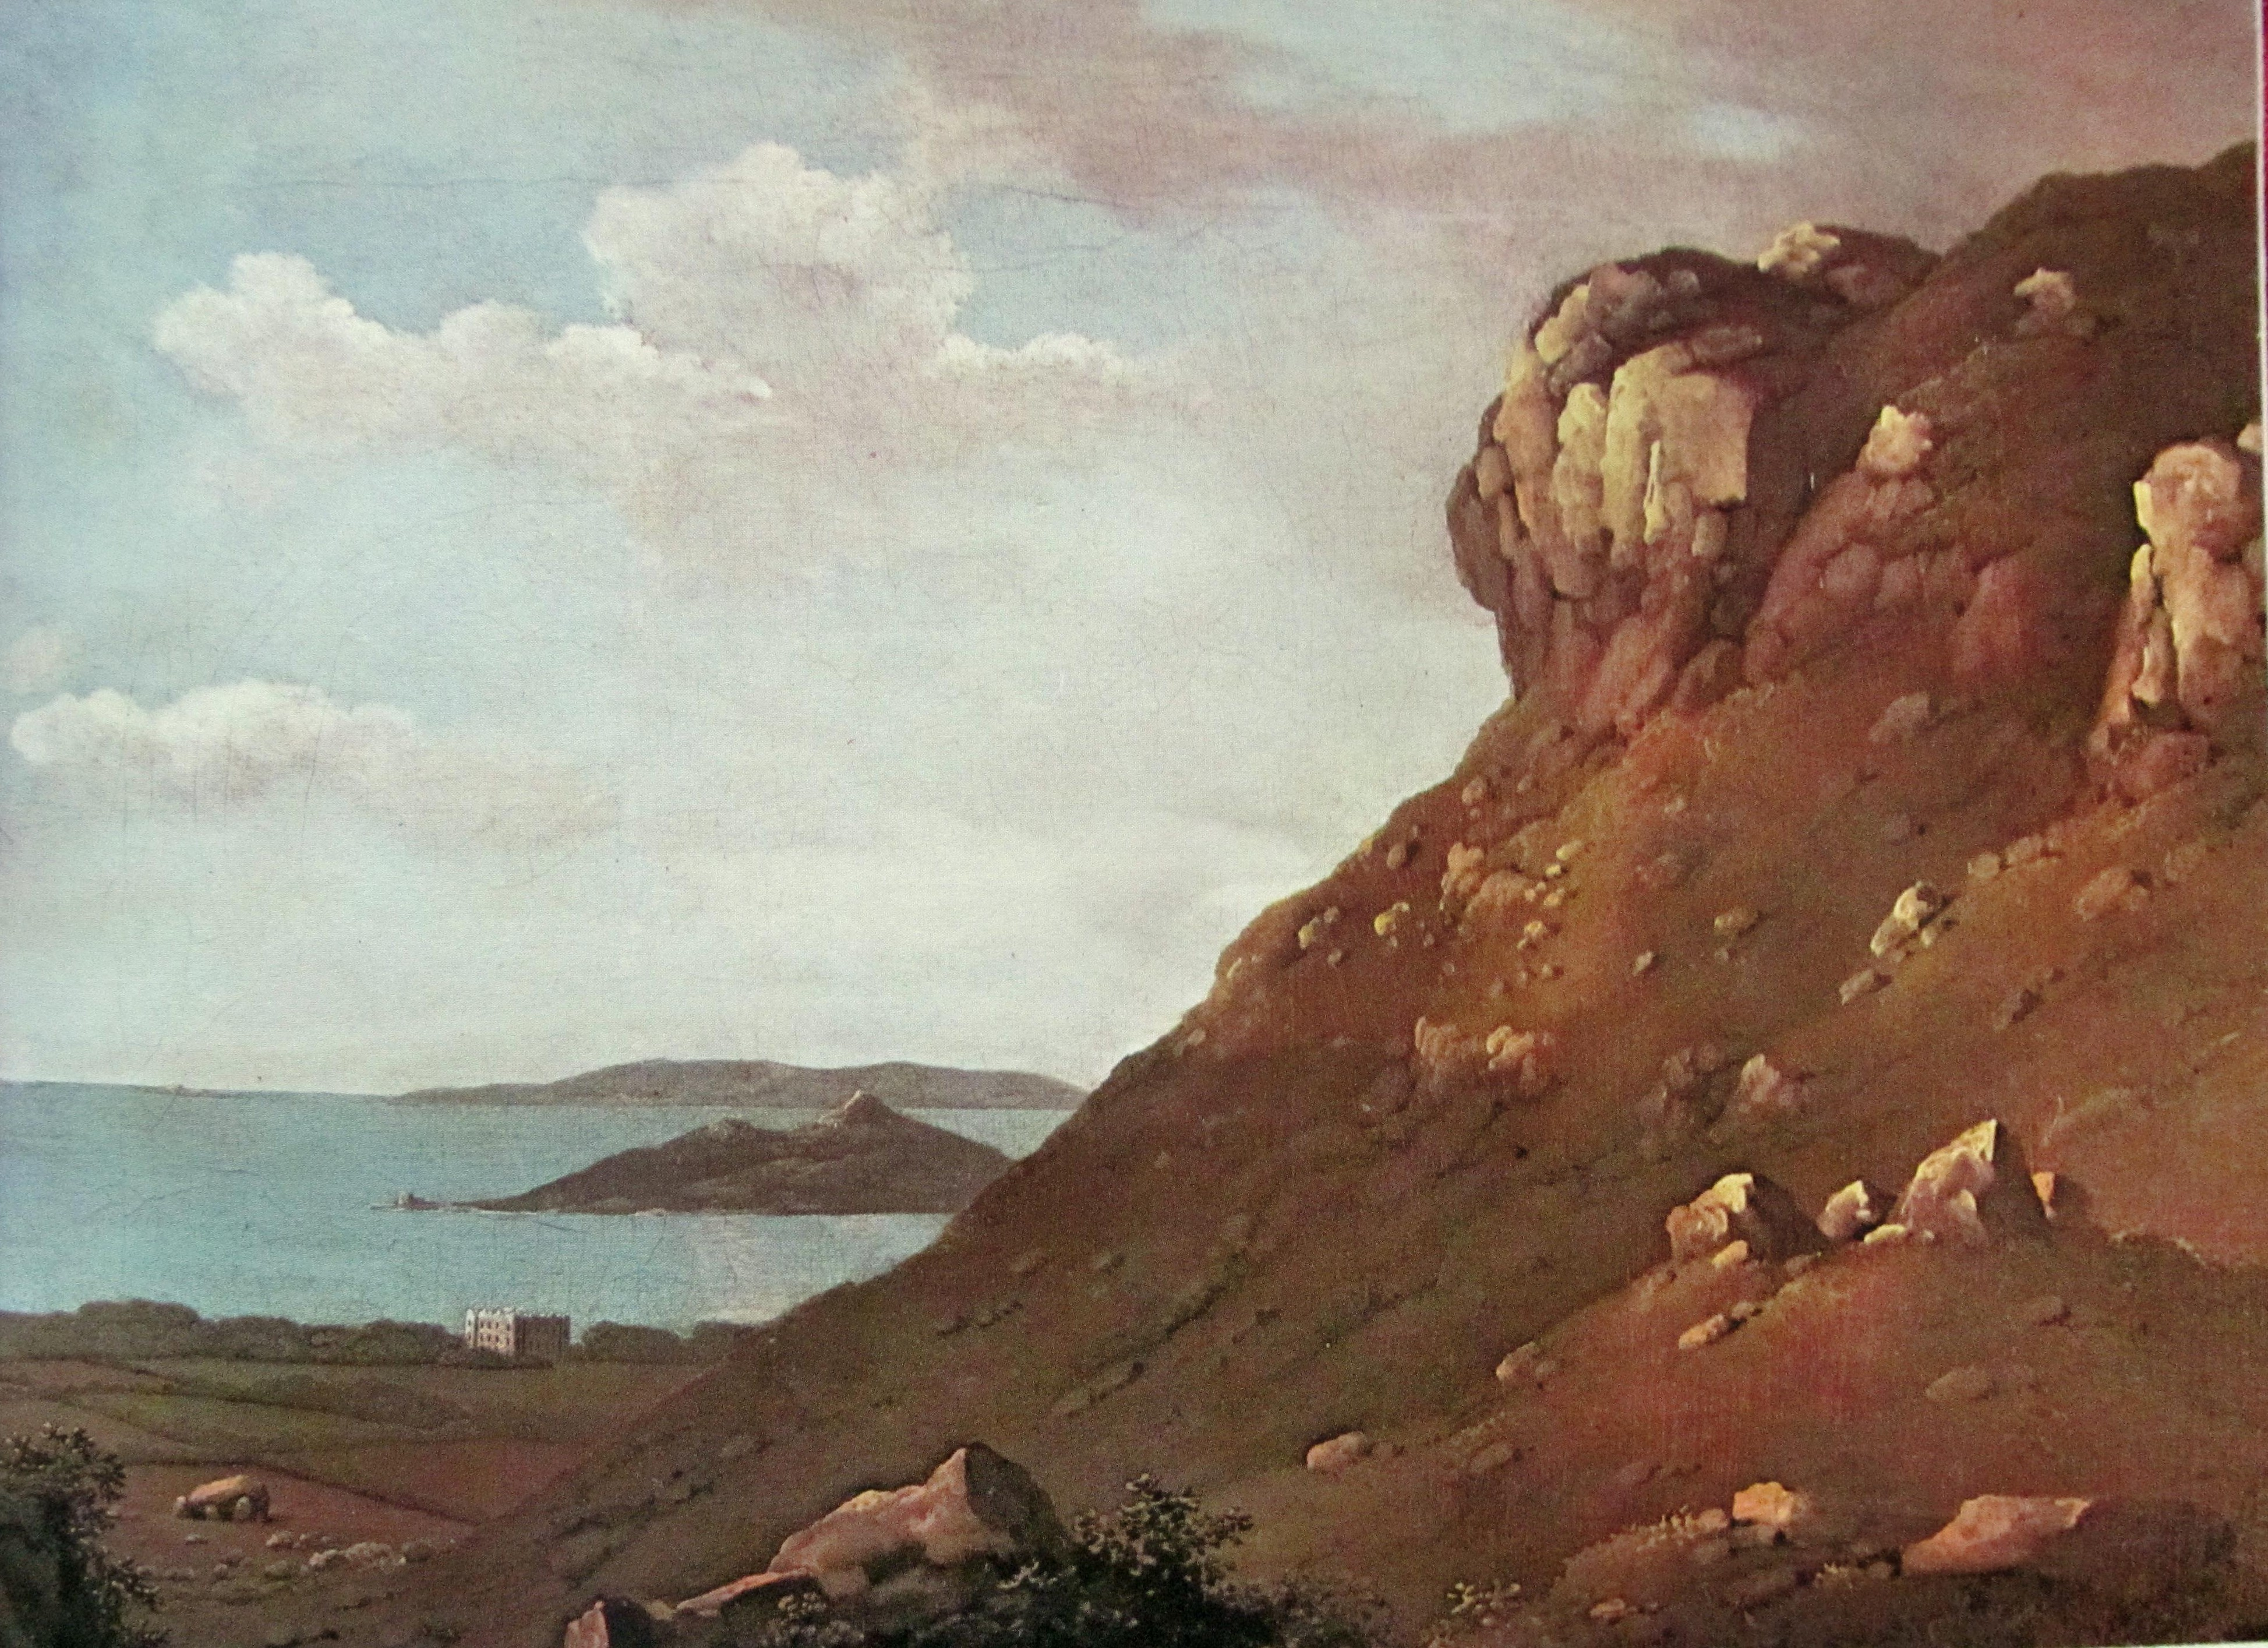 JA O'Connor's painting of Muck Rock, showing the dolmen at bottom right. The painting dates from c1820, before the rhododendron gardens were planted